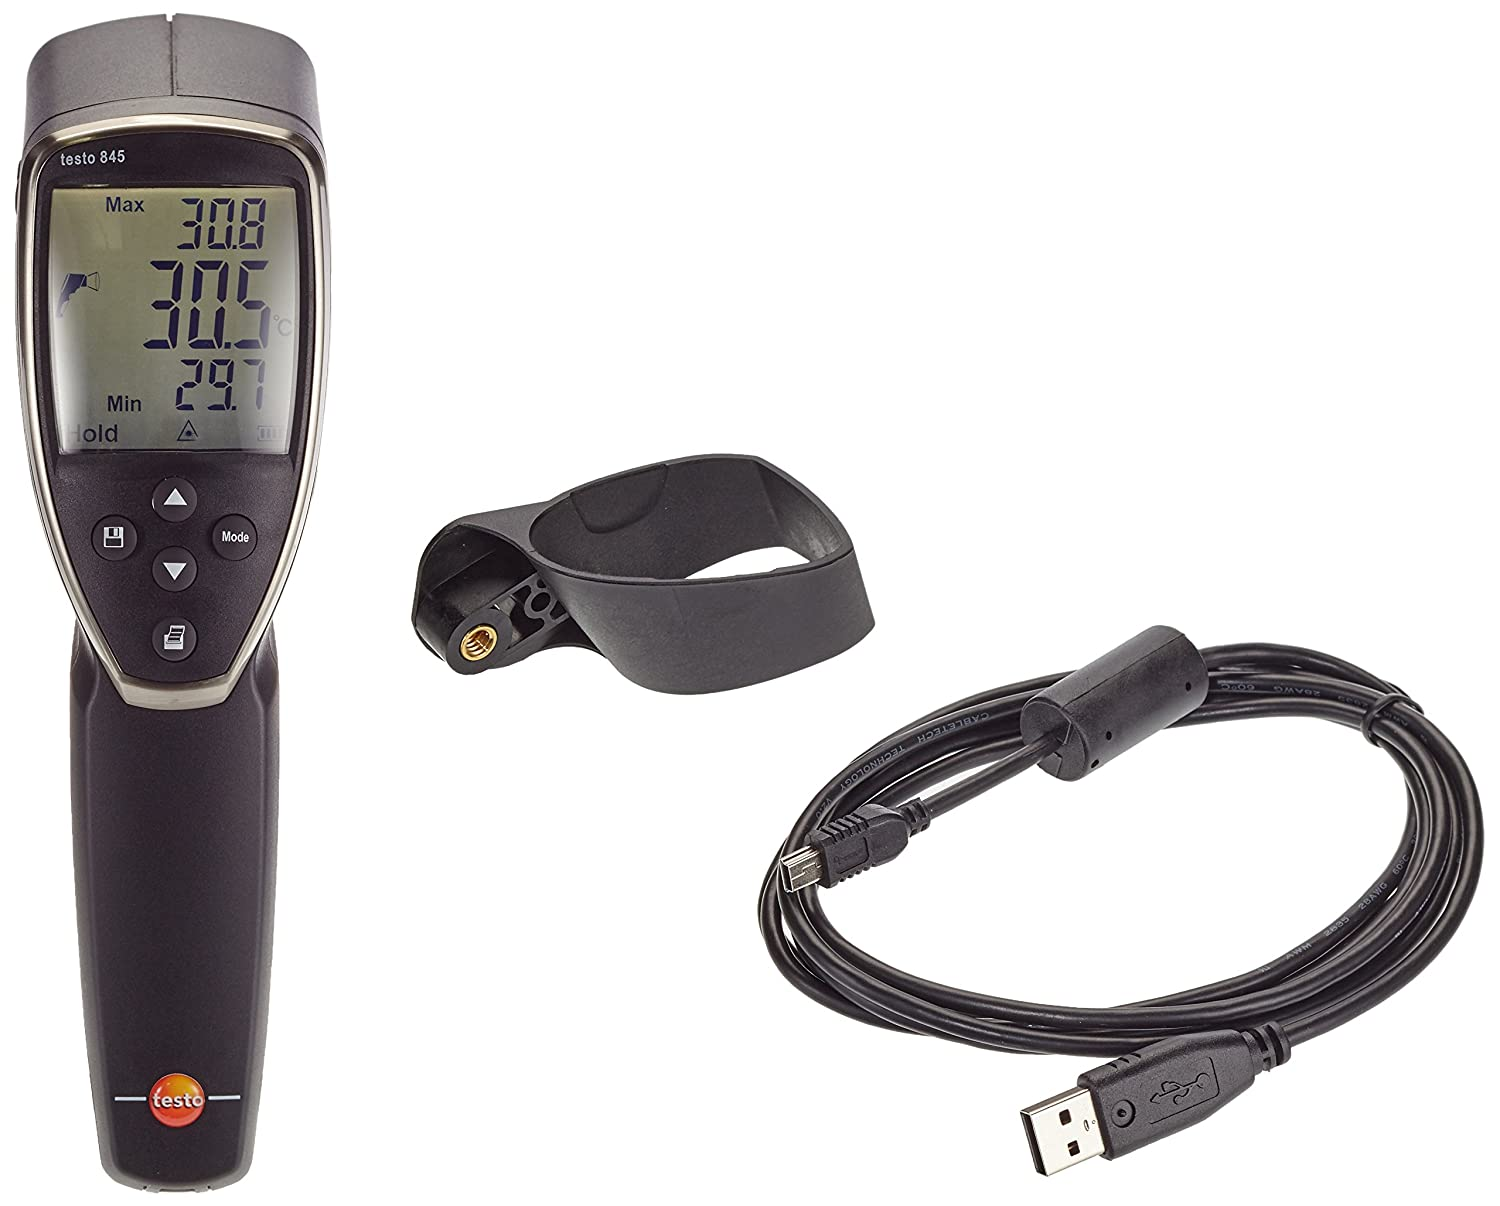 Testo infrarot thermometer amazon gewerbe